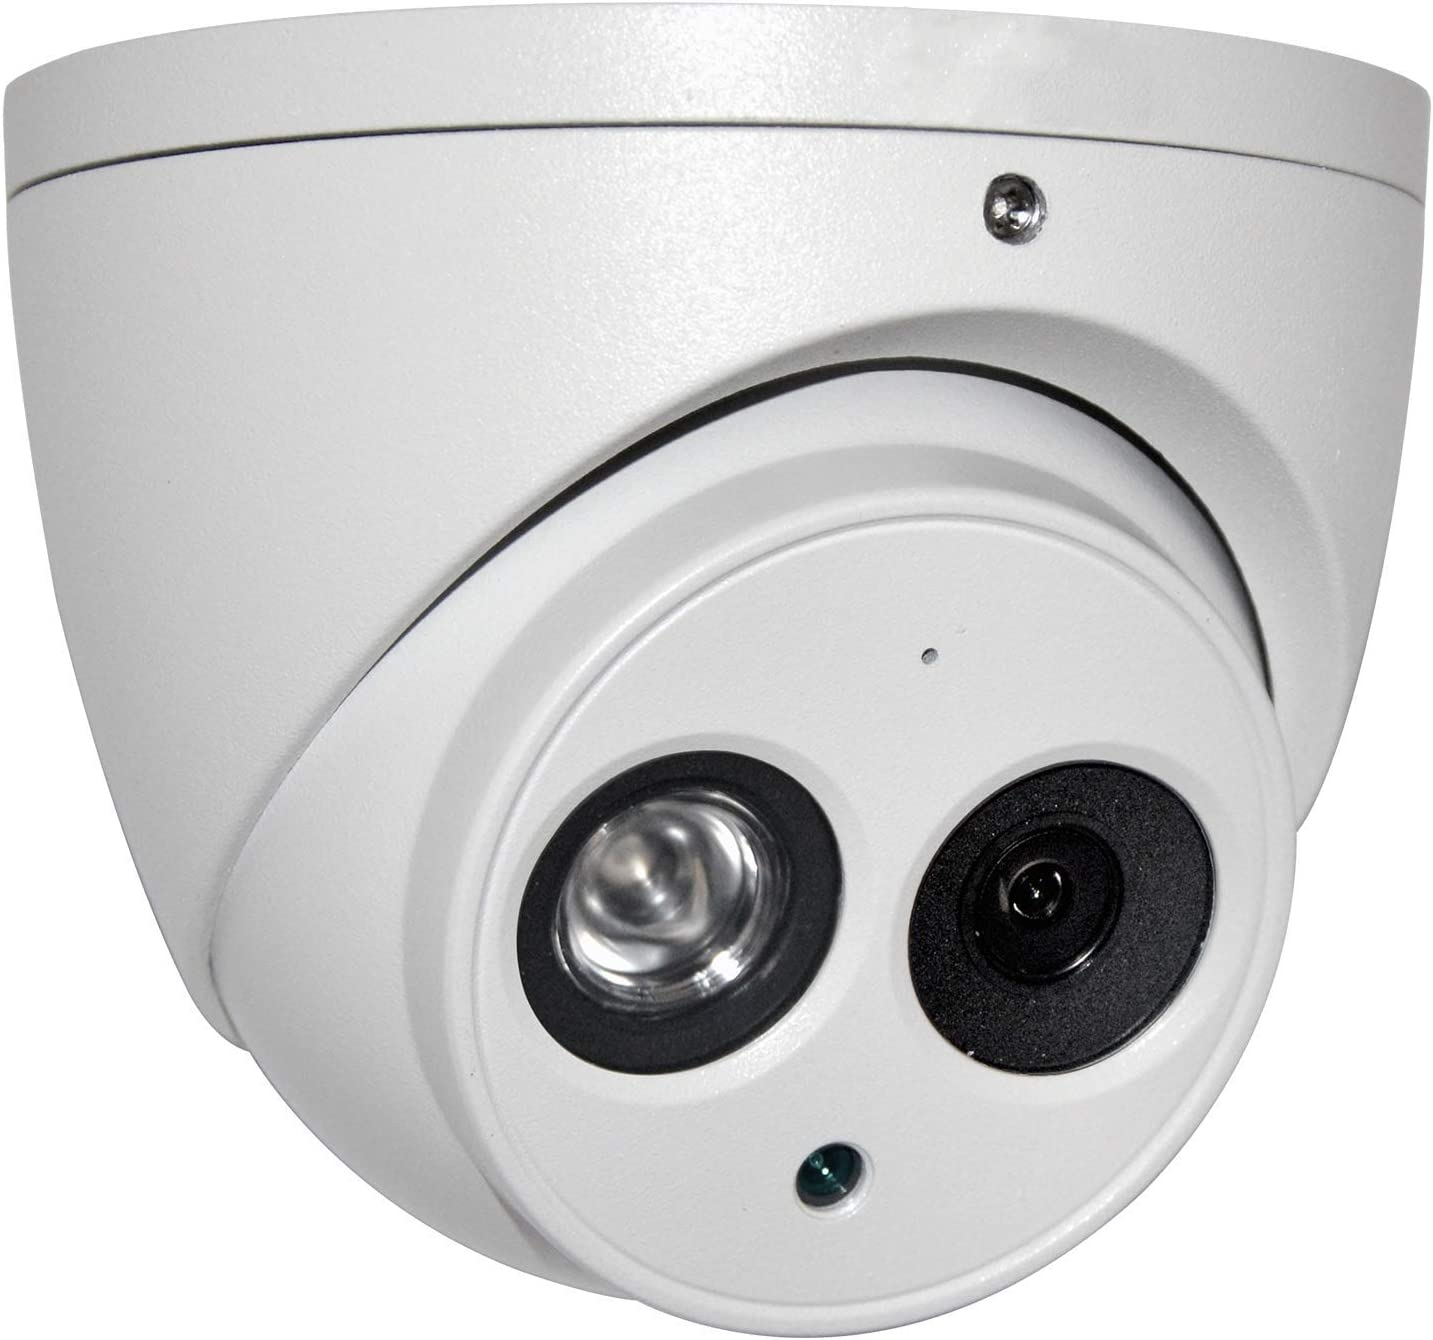 6MP PoE Outdoor IP Camera - OEM IPC-HDW4631C-A 2.8mm Dome Security Camera with 164ft IR Night Vision, Built-in Mic, H.265+, WDR, 3D DNR, IP67 Waterproof